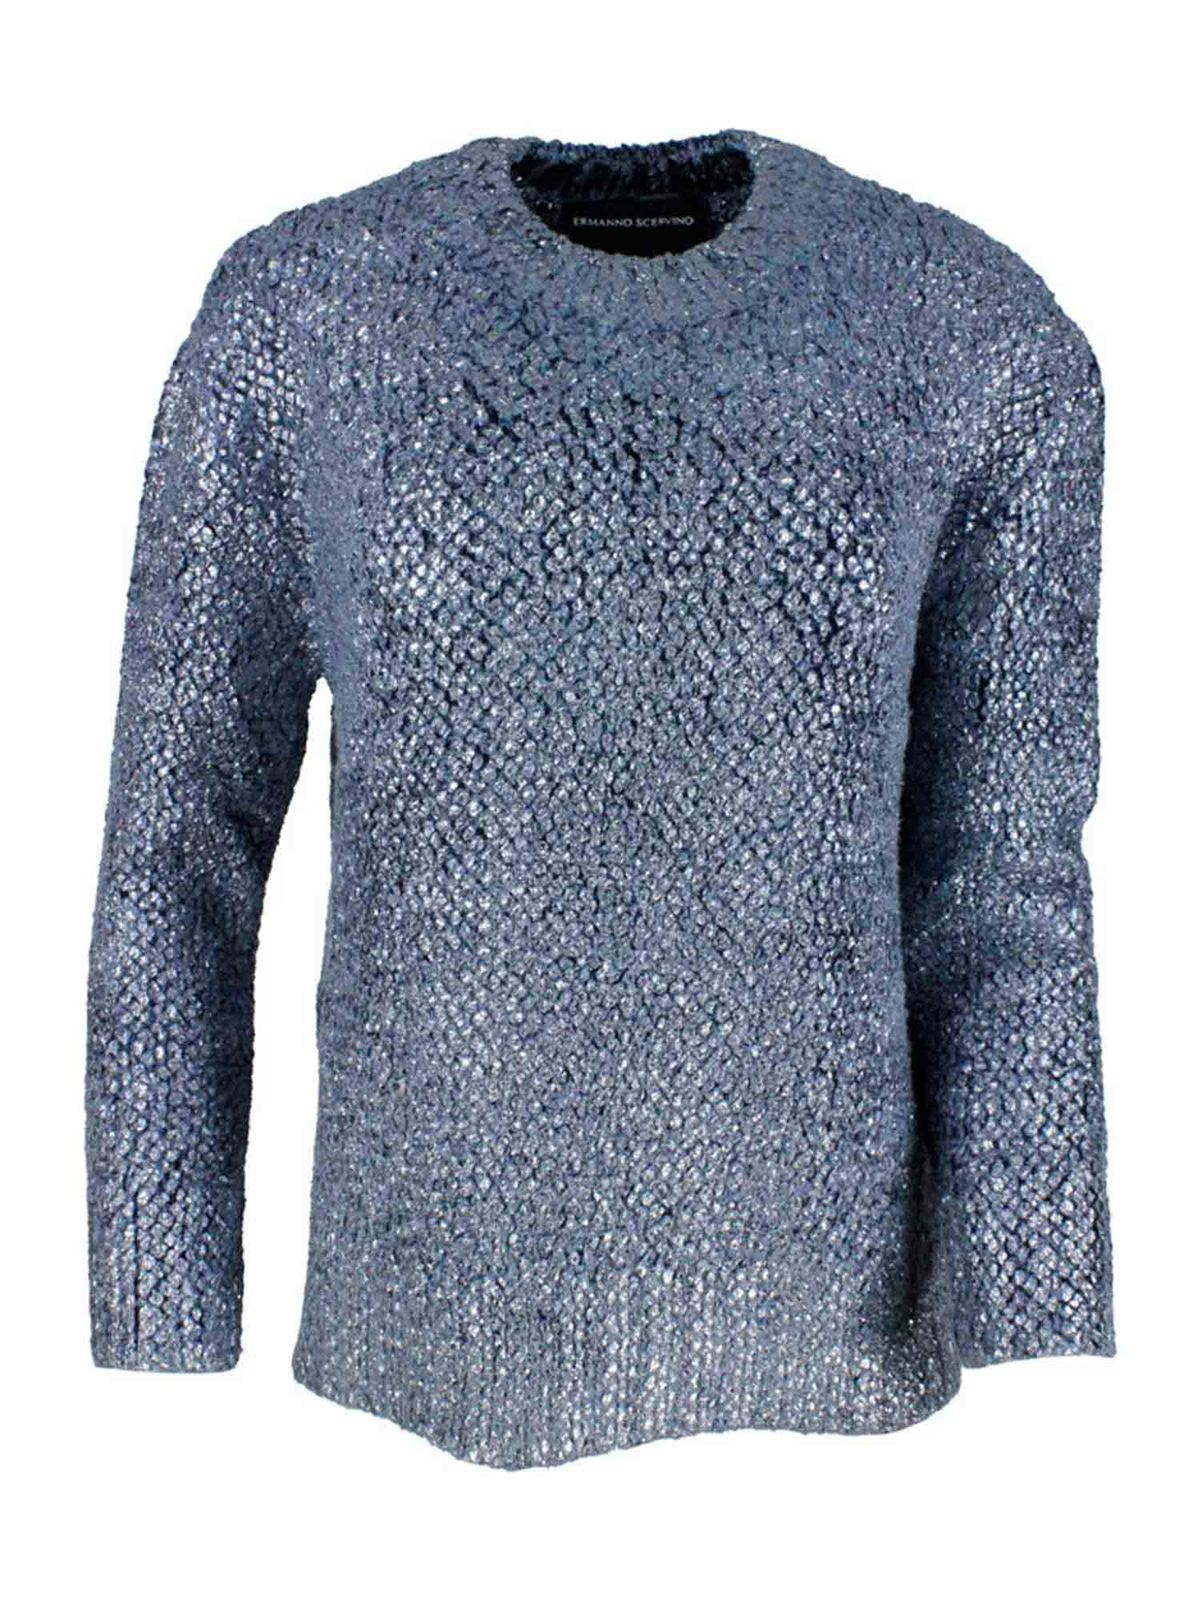 Ermanno Scervino CRYSTALS PULLOVER IN BLUE